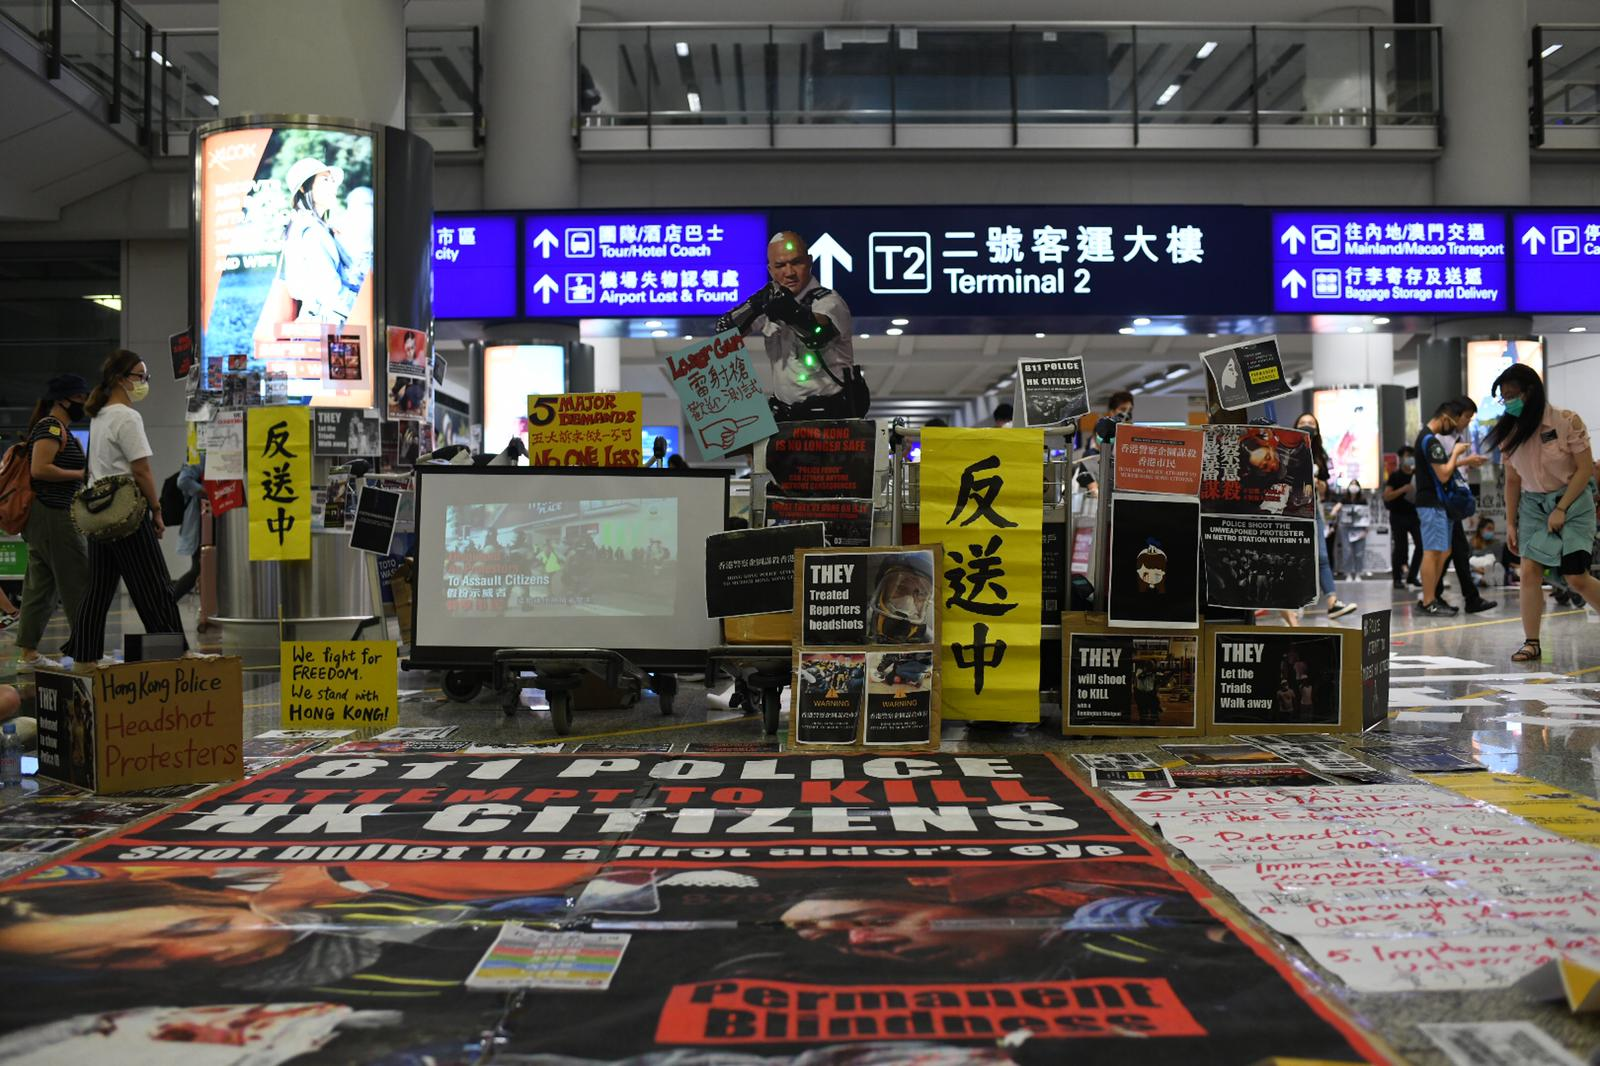 Posters and signs adorn the Hong Kong airport terminal as protesters shut down the airport for a second day.